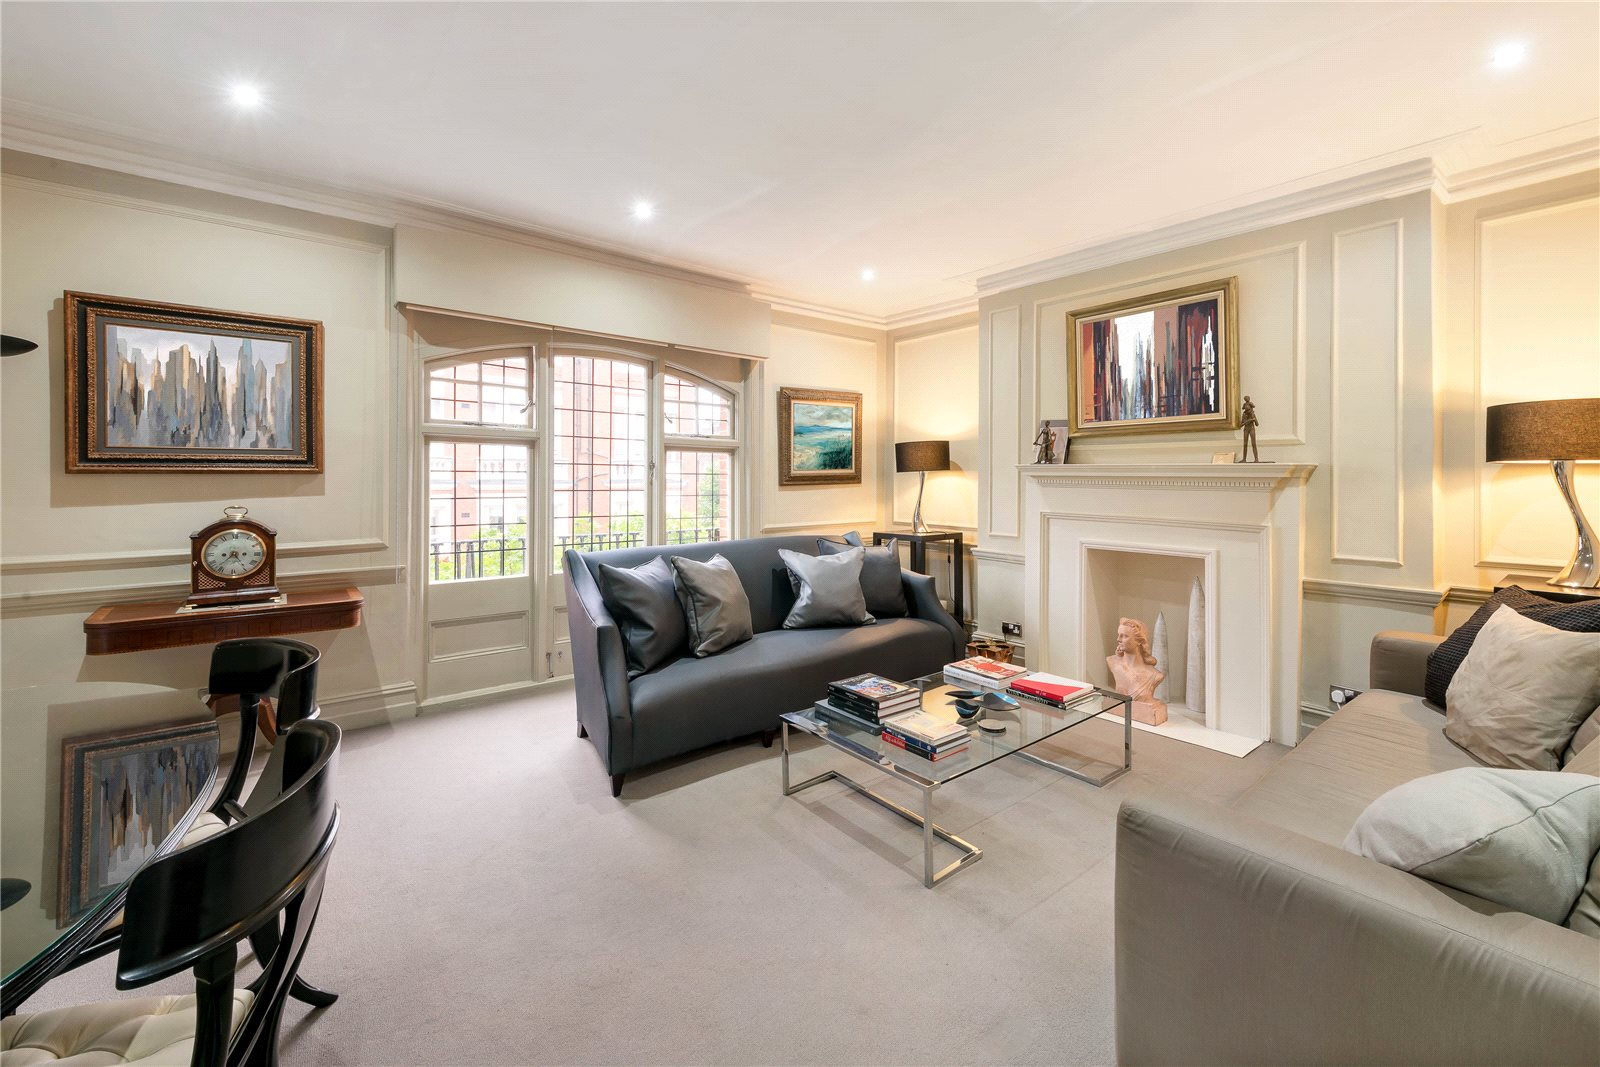 公寓 為 出售 在 Sloane Gate Mansions, D'oyley Street, London, SW1X London, 英格蘭